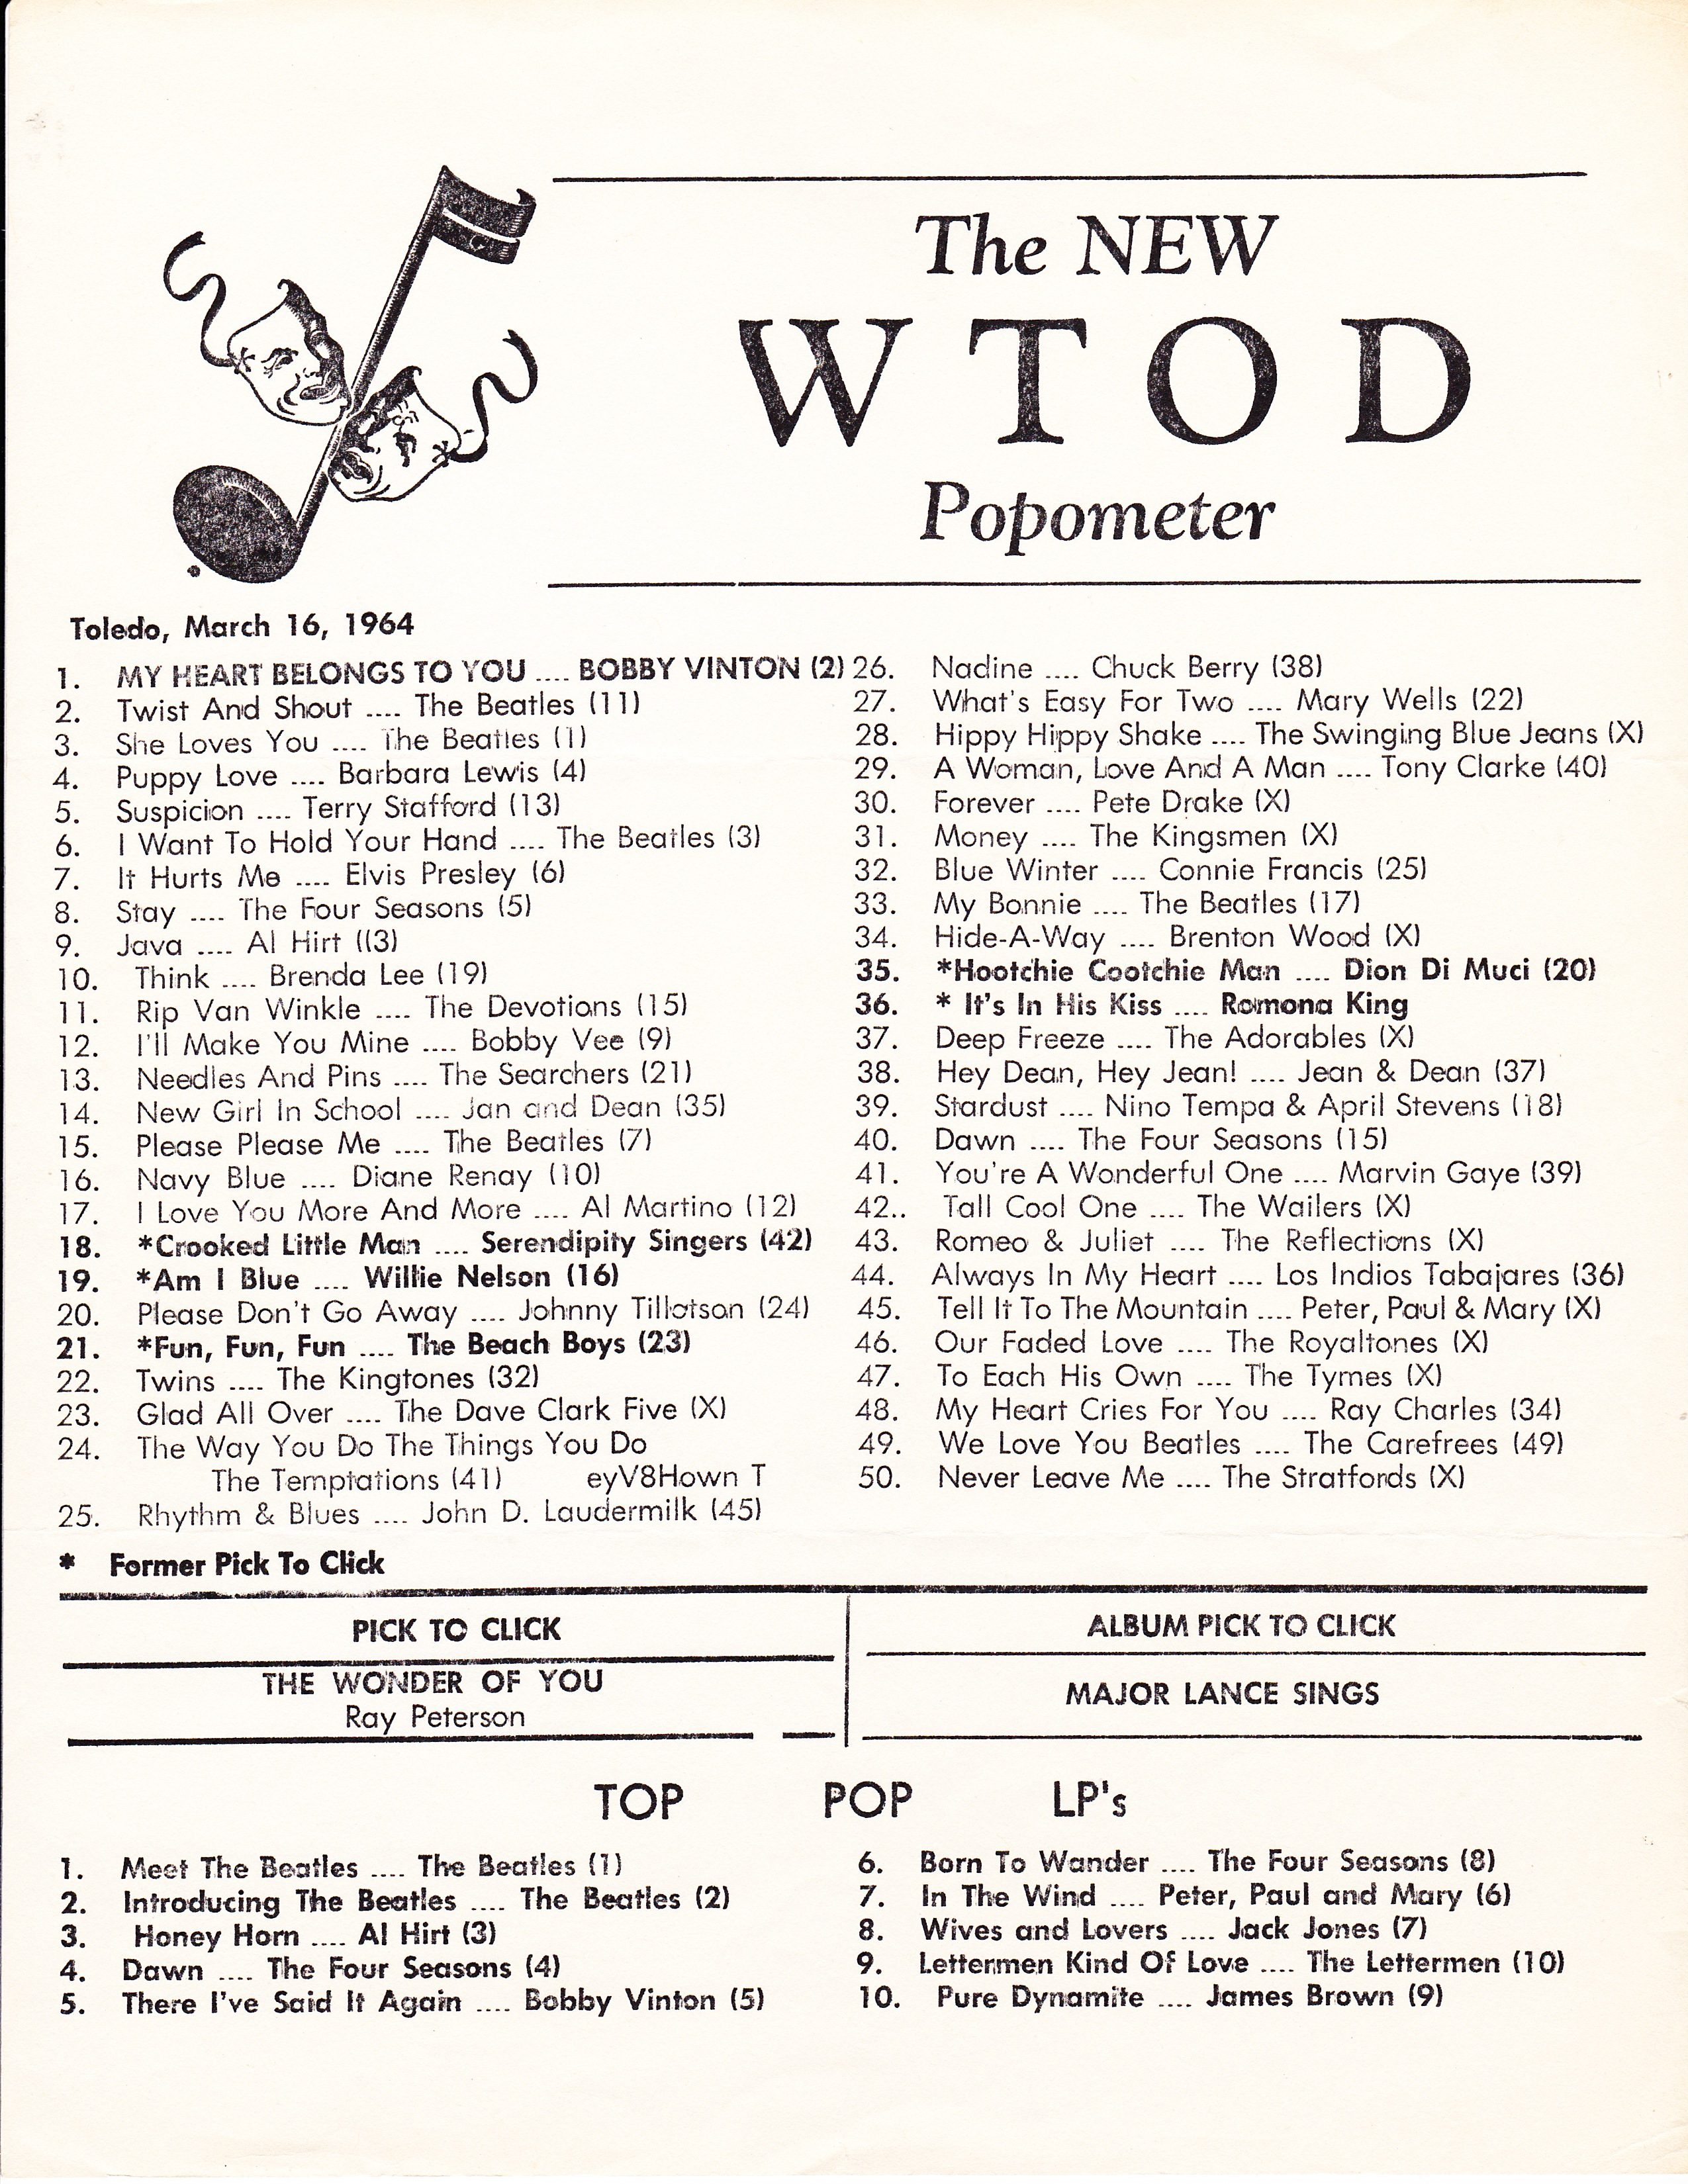 WTOD SURVEY - MARCH 16, 1964